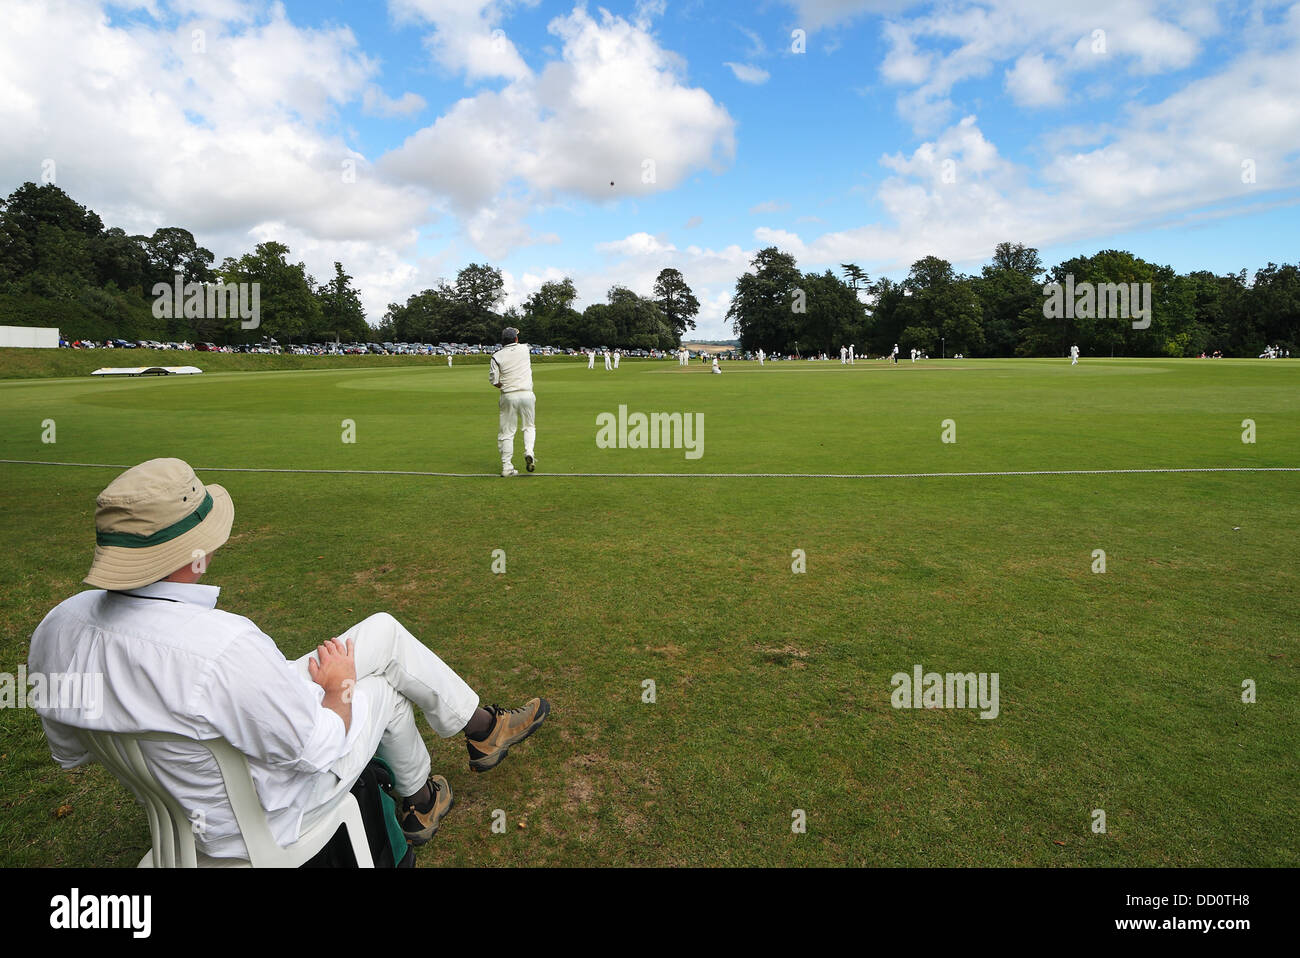 Batsman in action at an English Cricket match with spectator watching - Stock Image